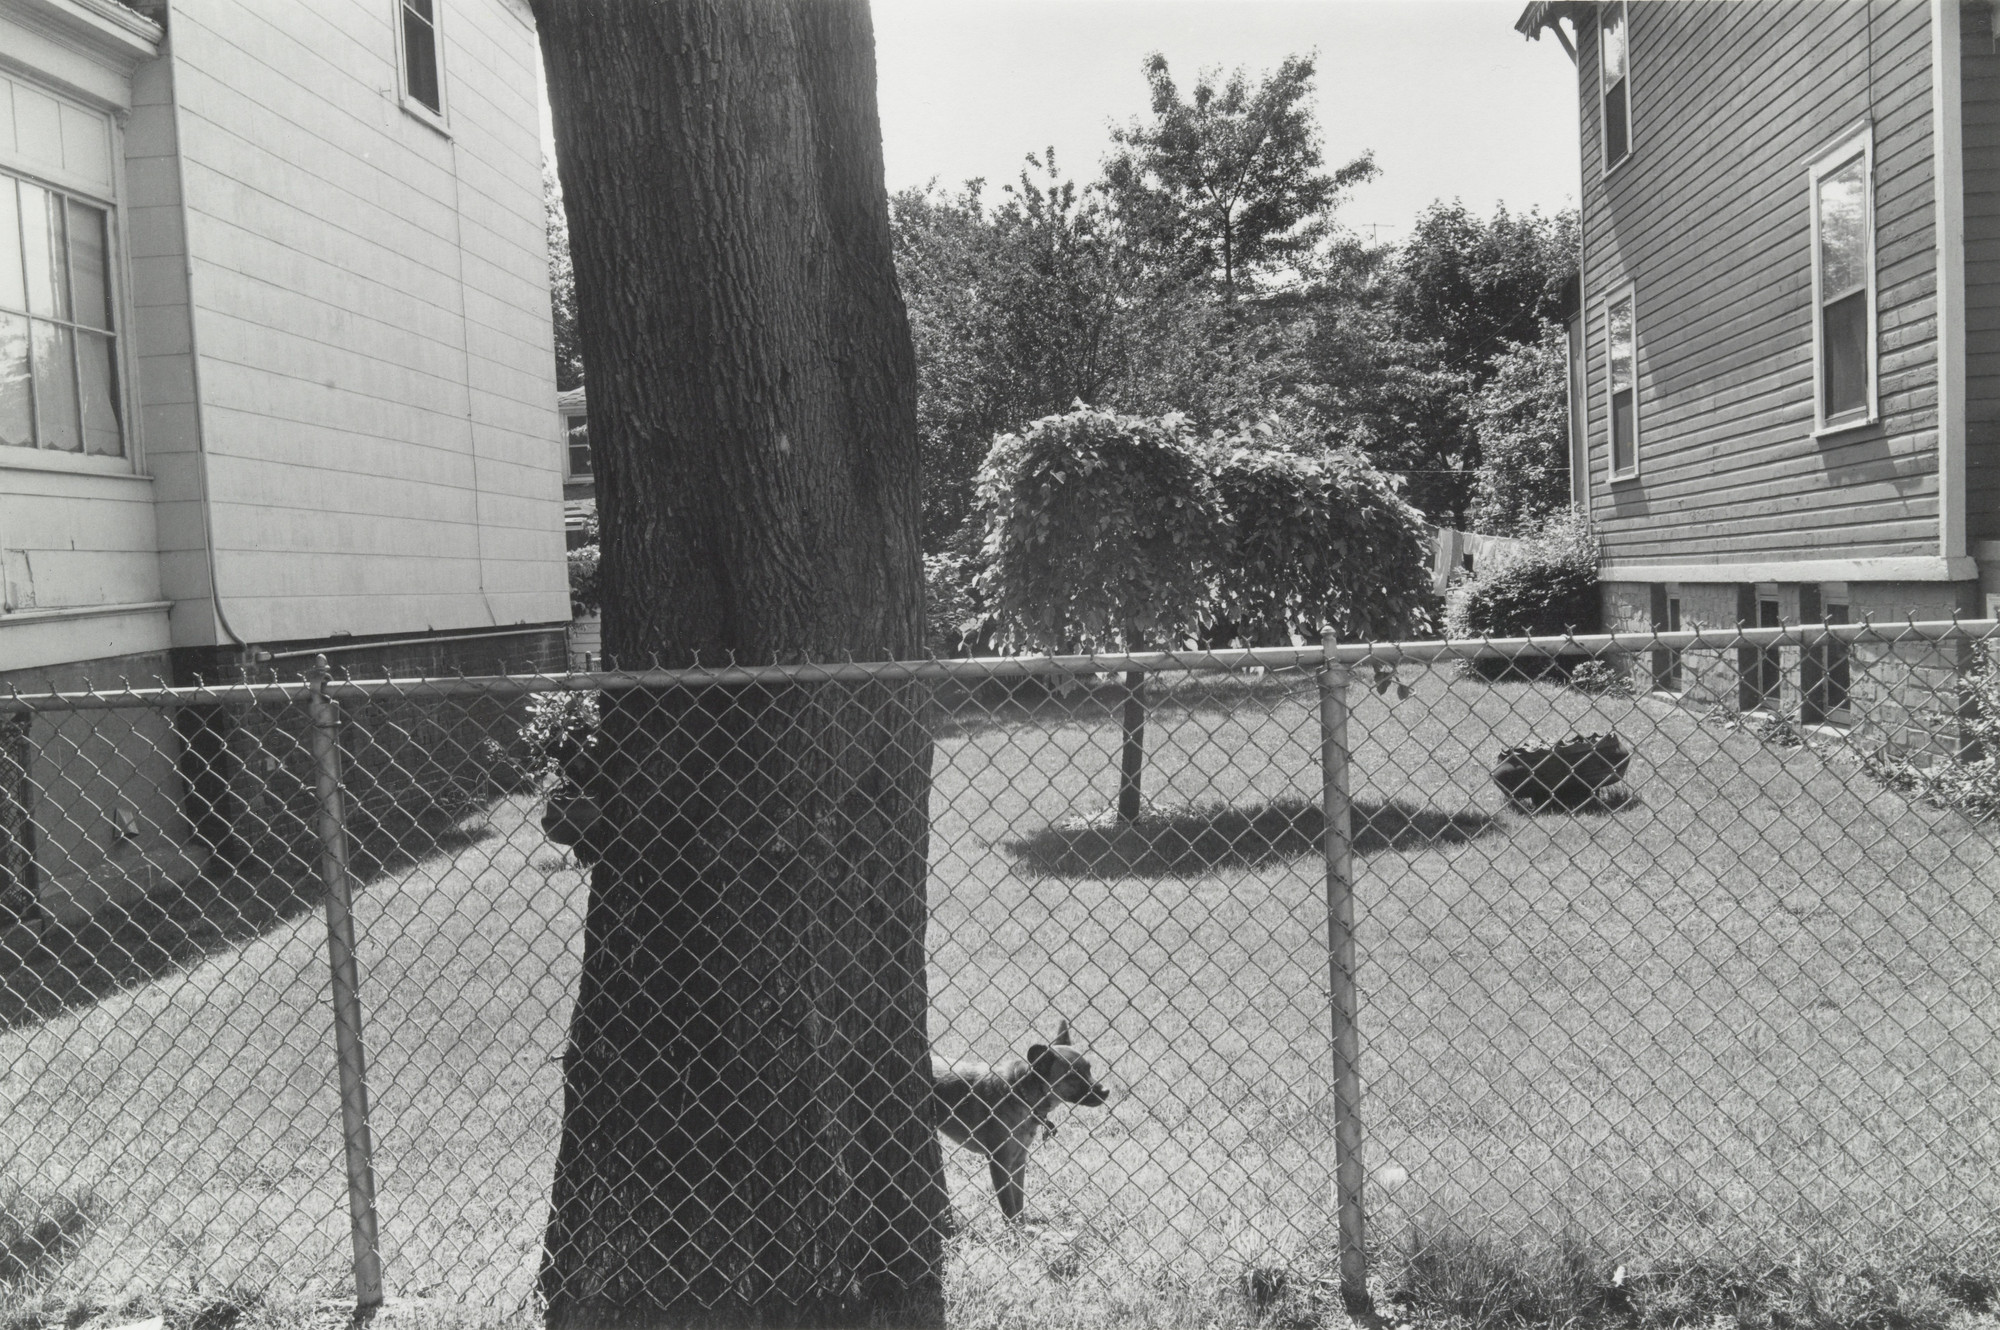 Thomas Roma. Speedy, Sheepshead Bay, Brooklyn. 1974